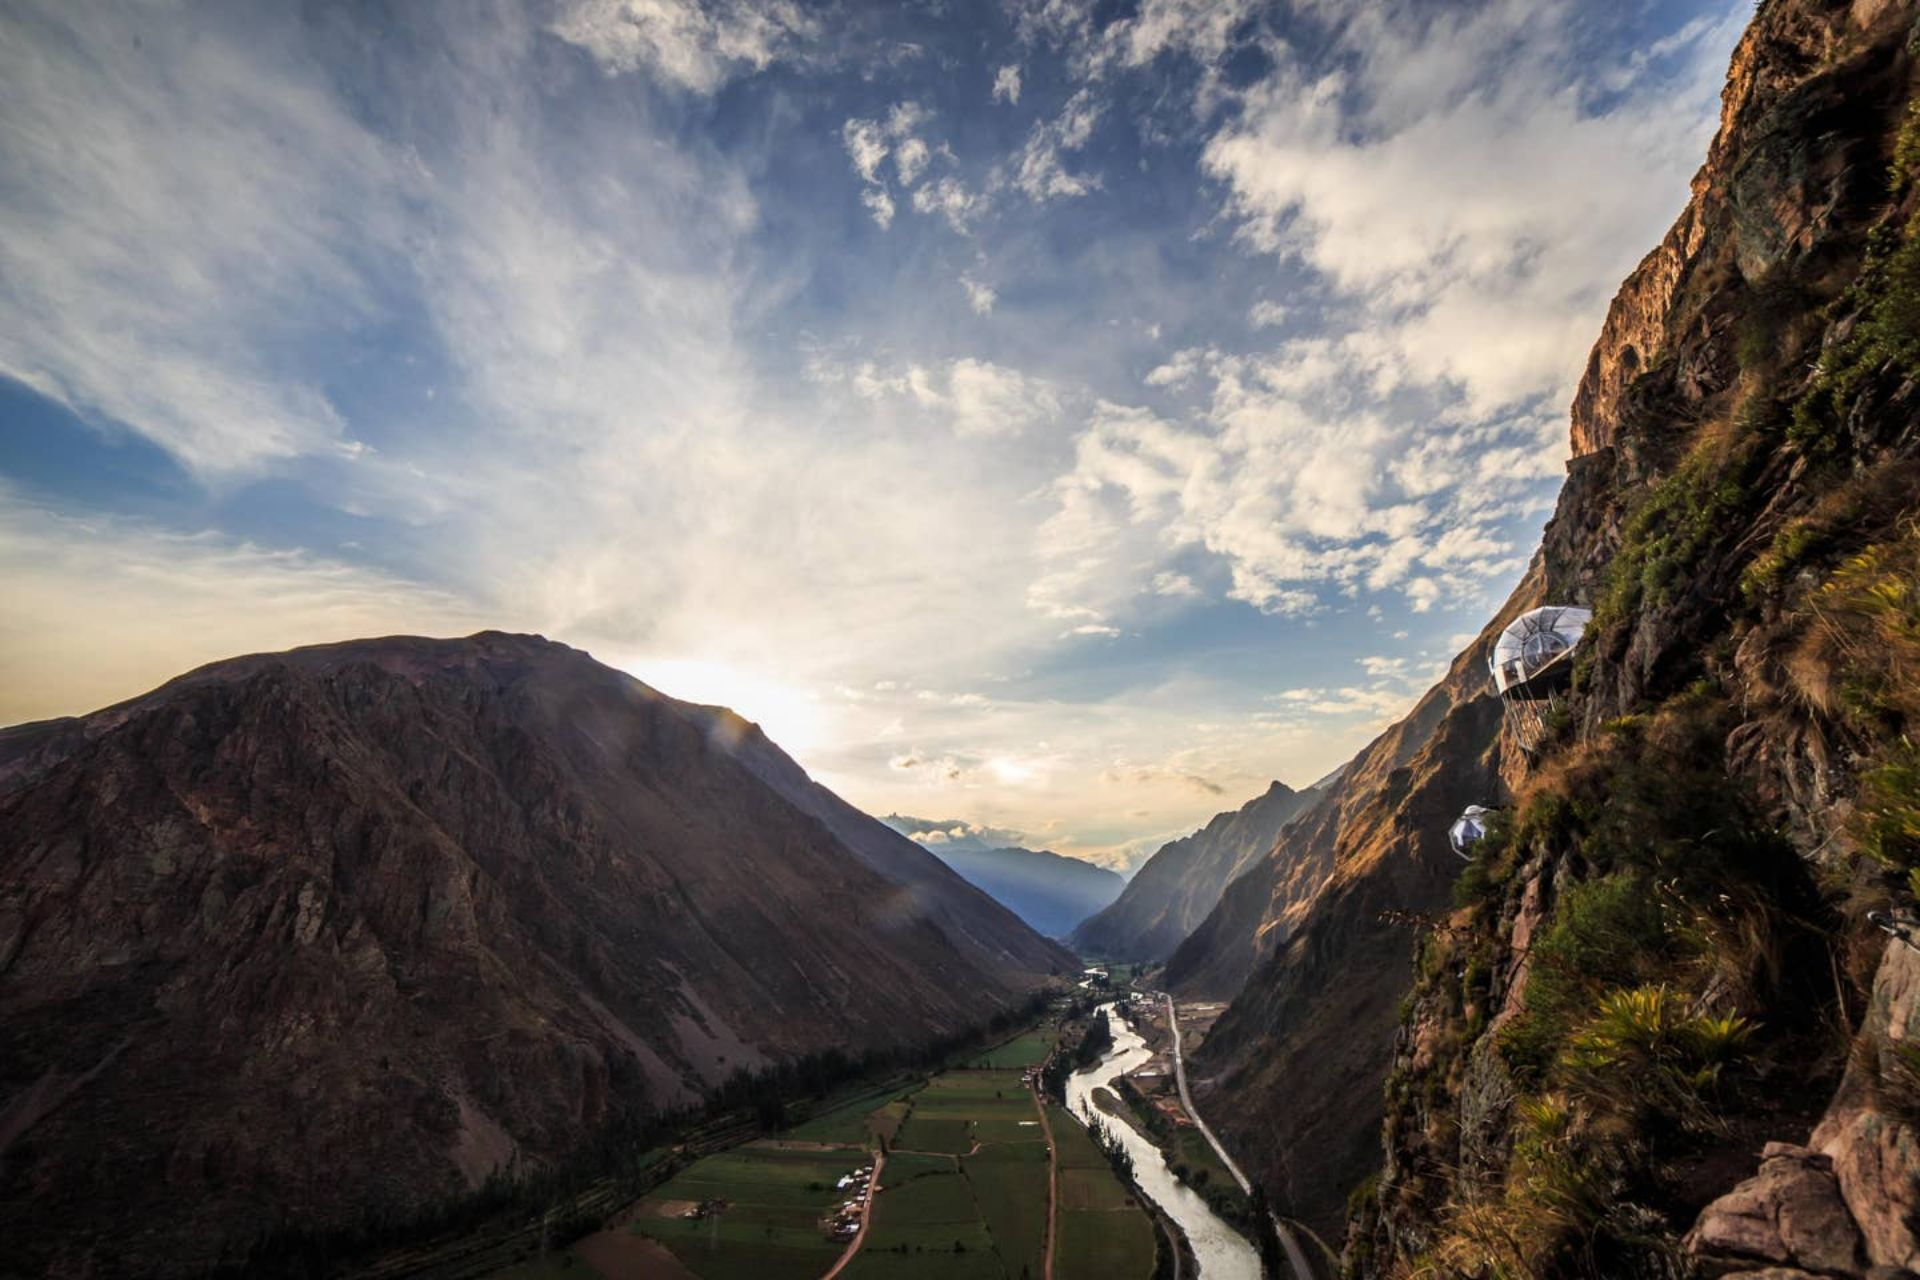 pods-hanging-off-cliff-edge-over-valley-with-a-river-running-through-peru-skylodge-adventure-pods-urubamba